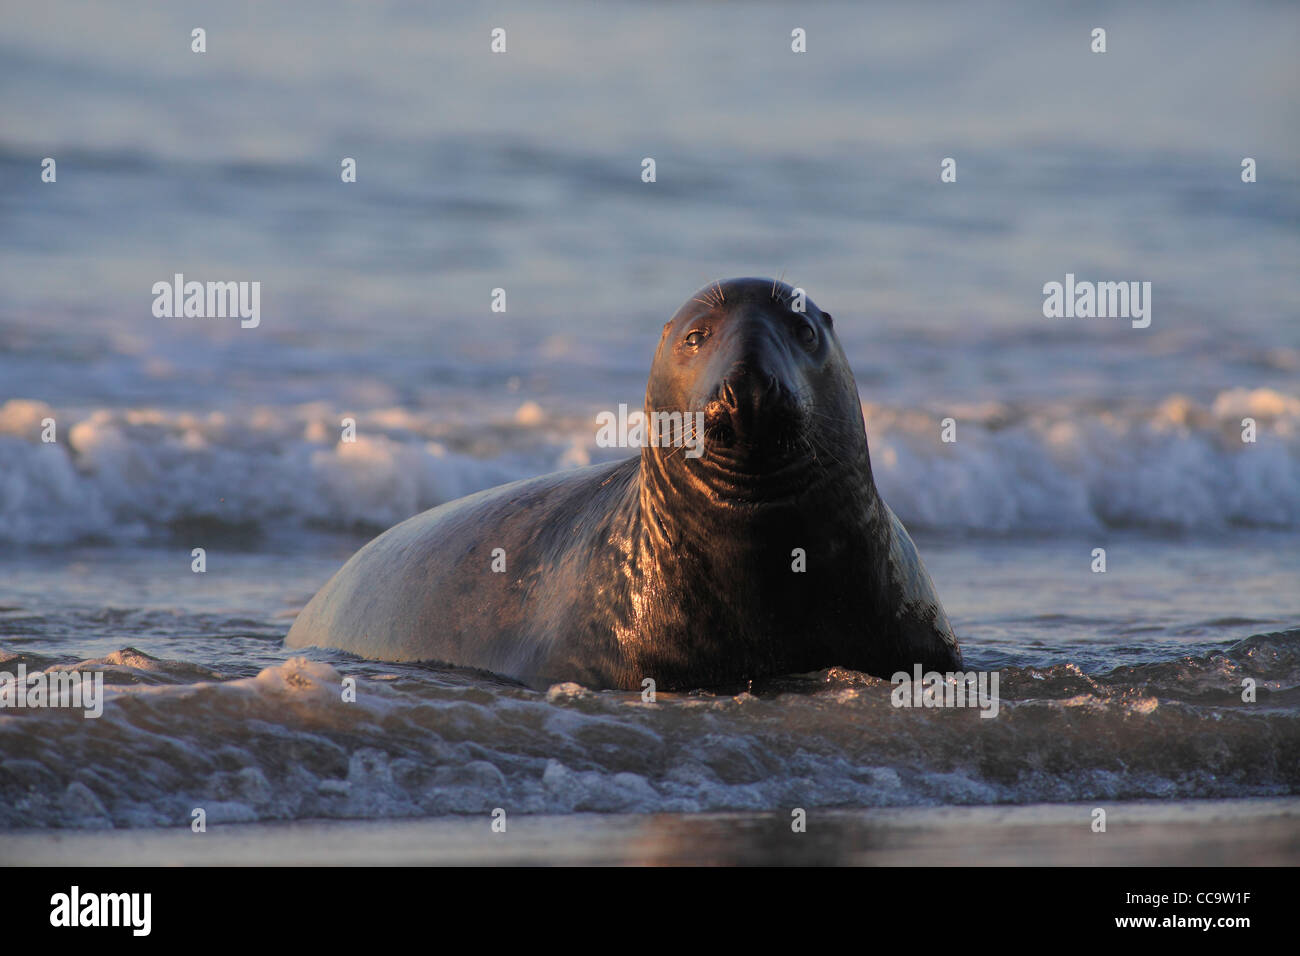 grey seal bull at sunset; Latin: Halichoerus grypus - Stock Image